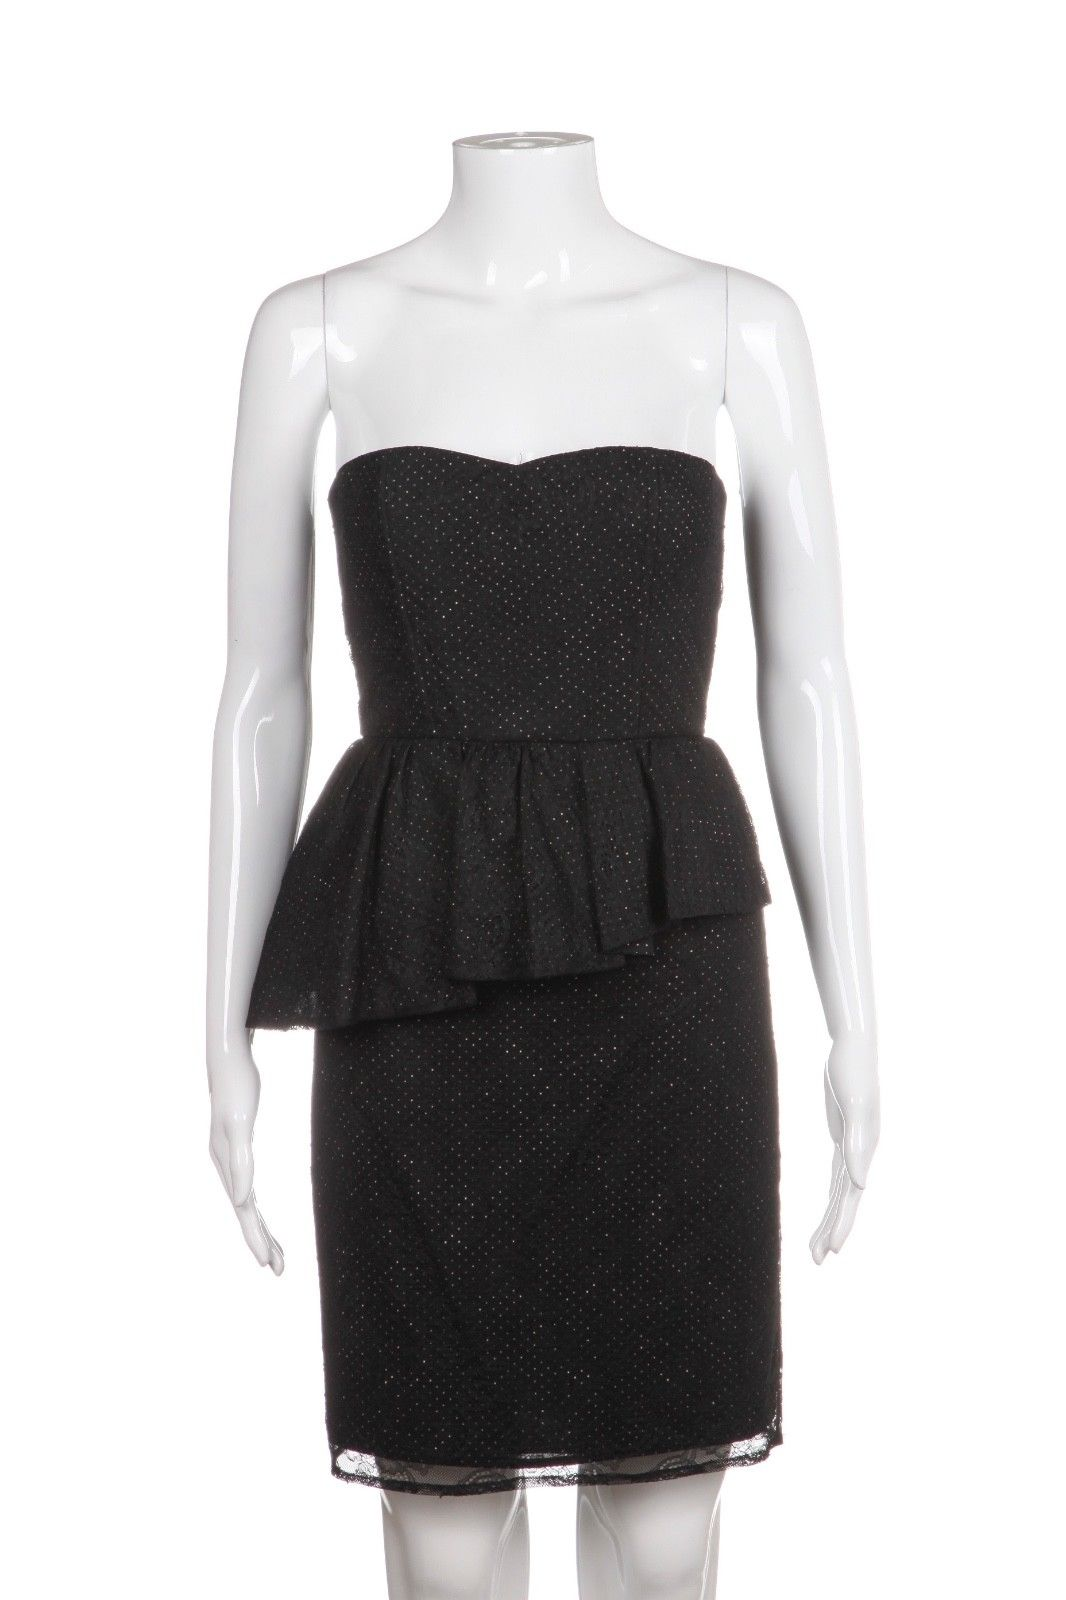 ALICE + OLIVIA Strapless Peplum Dress Size 4 (New)